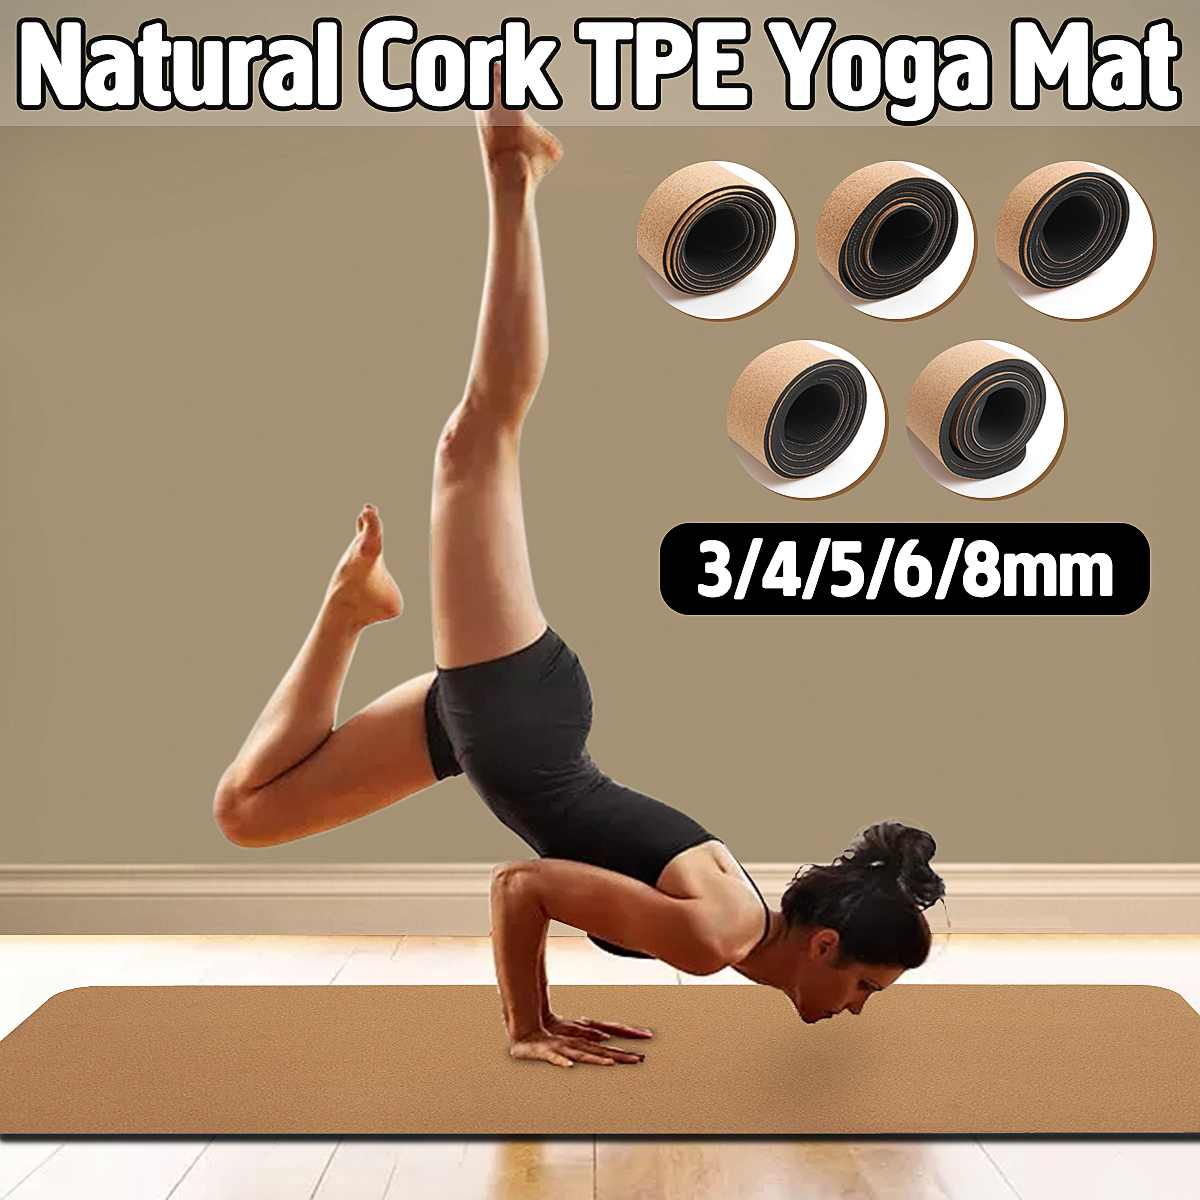 3/4/5/6/8 Mm Natural Cork TPE Yoga Mat Non-slip Fitness Gym Exercise Sports Absorb Sweat Pilates Pads 183X61cm